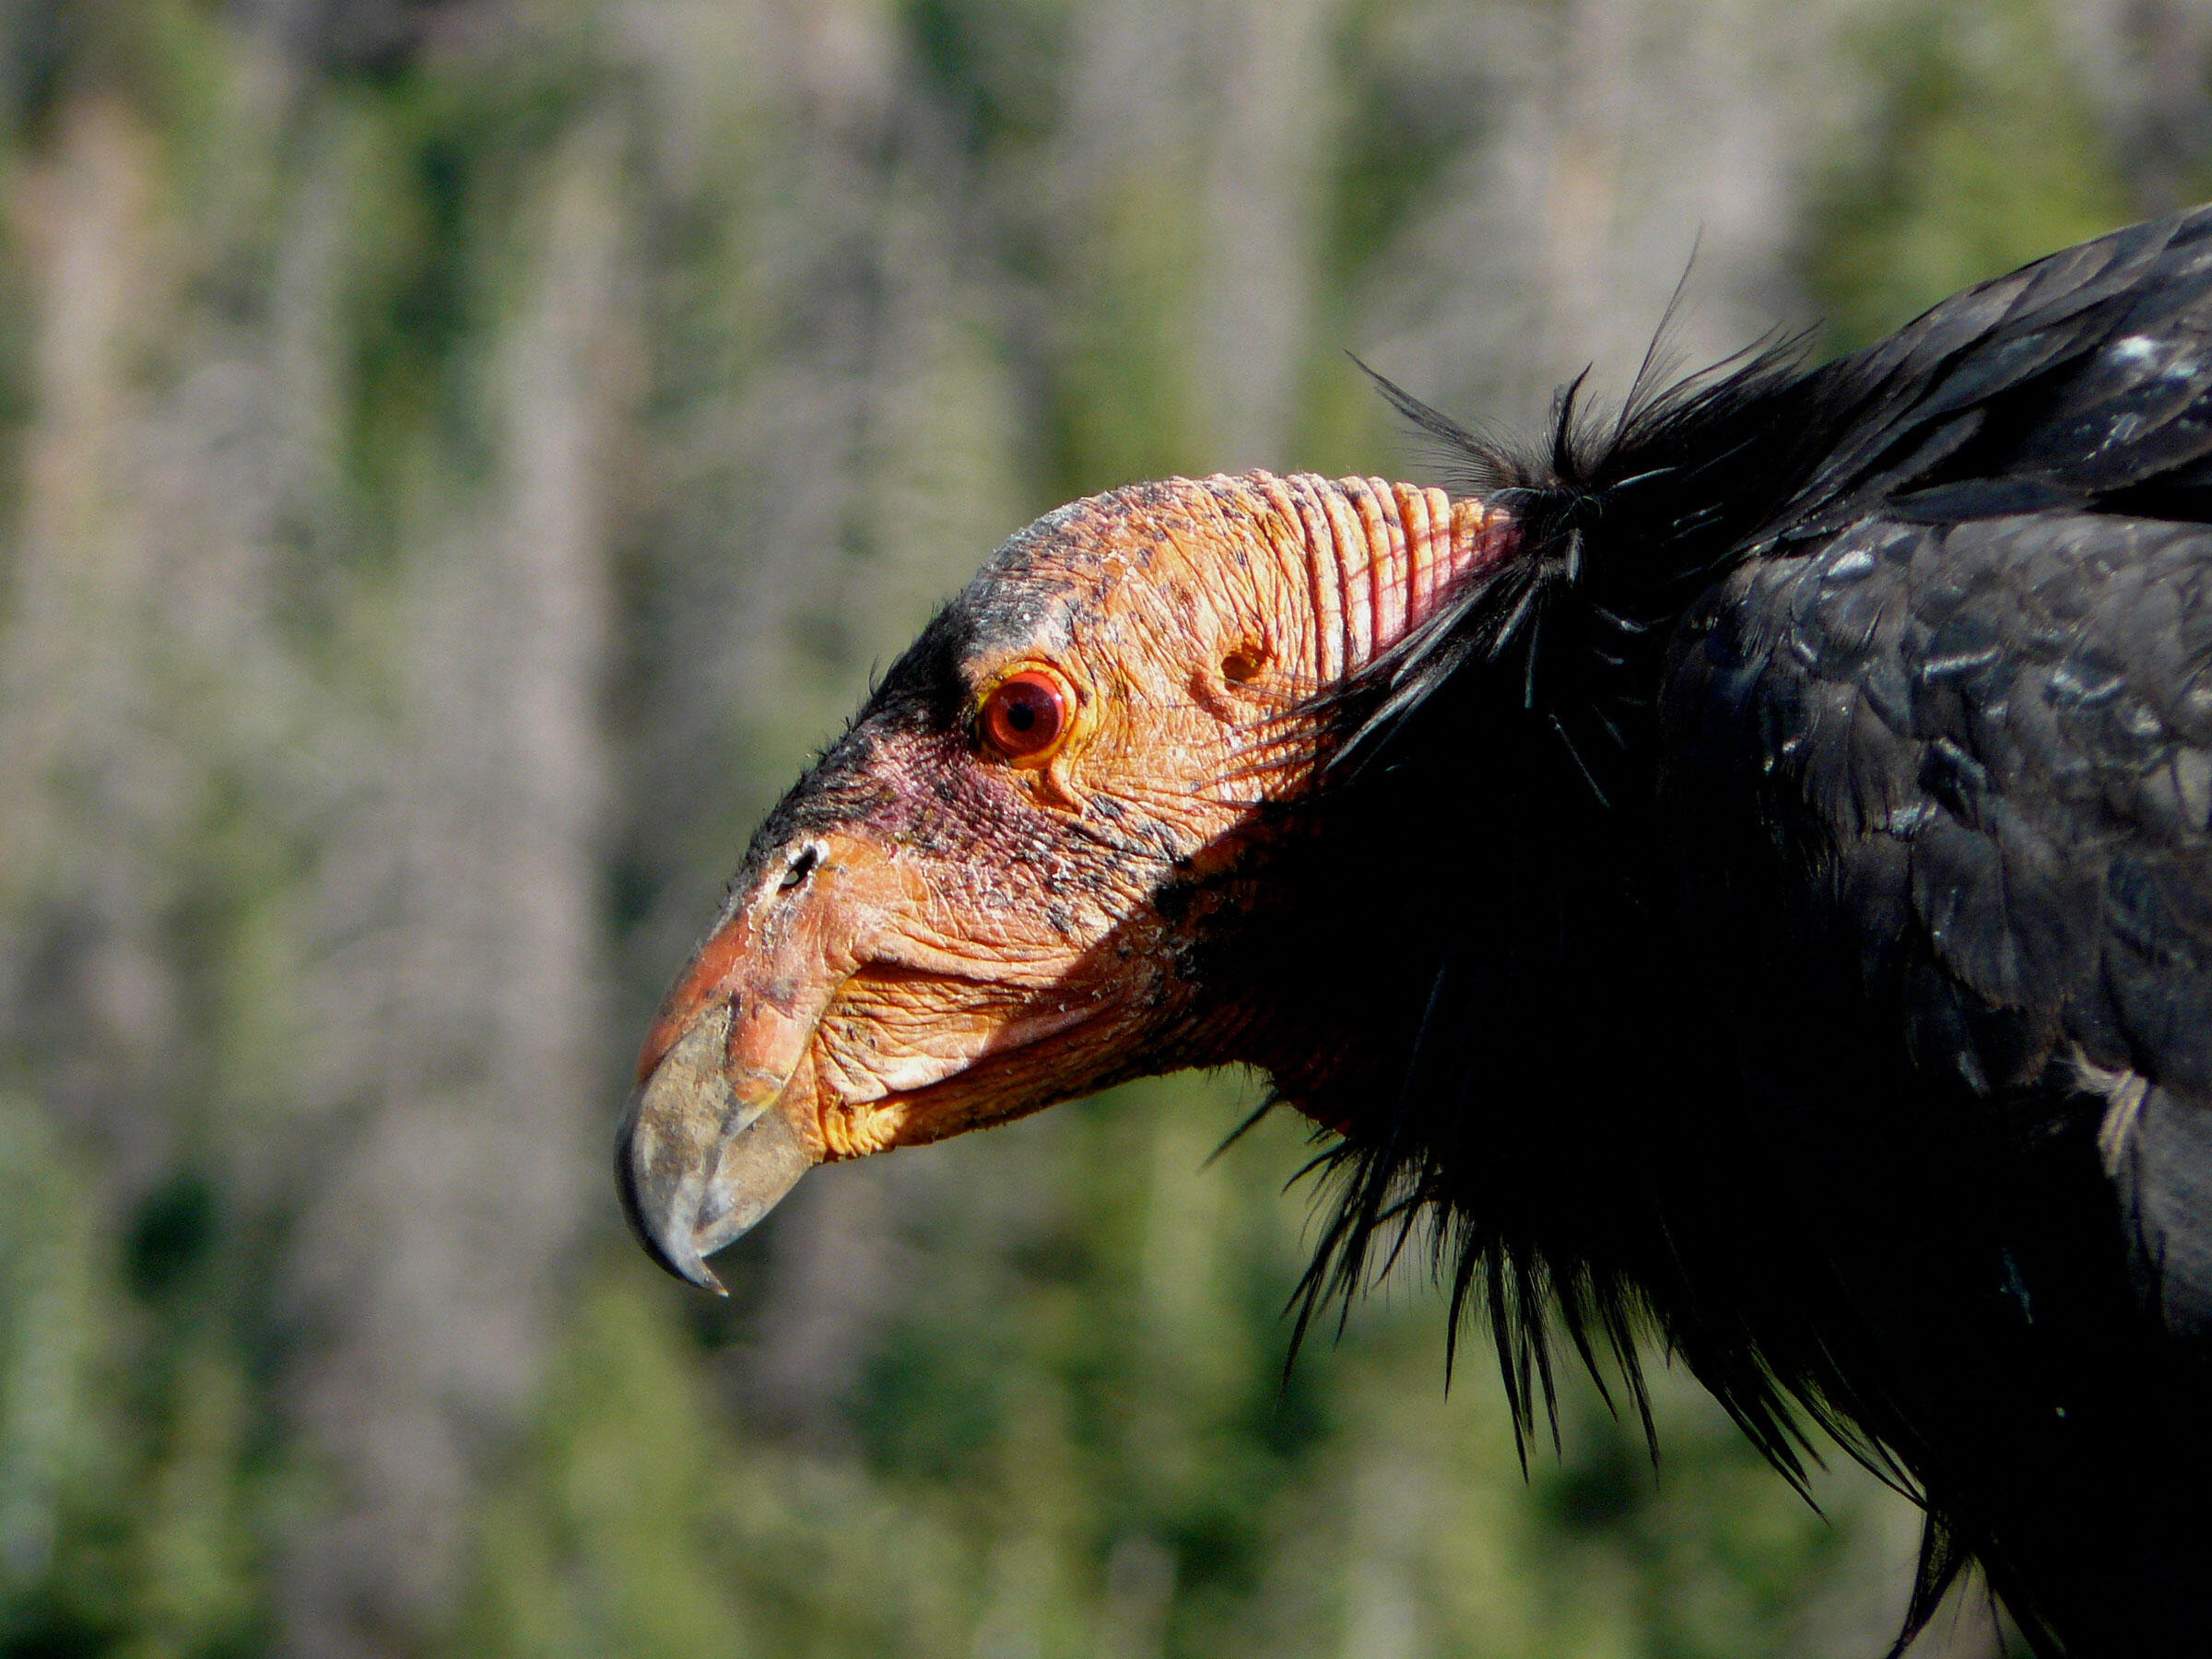 An adult California Condor in the Grand Canyon region of Arizona. The condor population is recovering across North America after reaching a population low of only 22 in the '80s. Evan R. Buechley